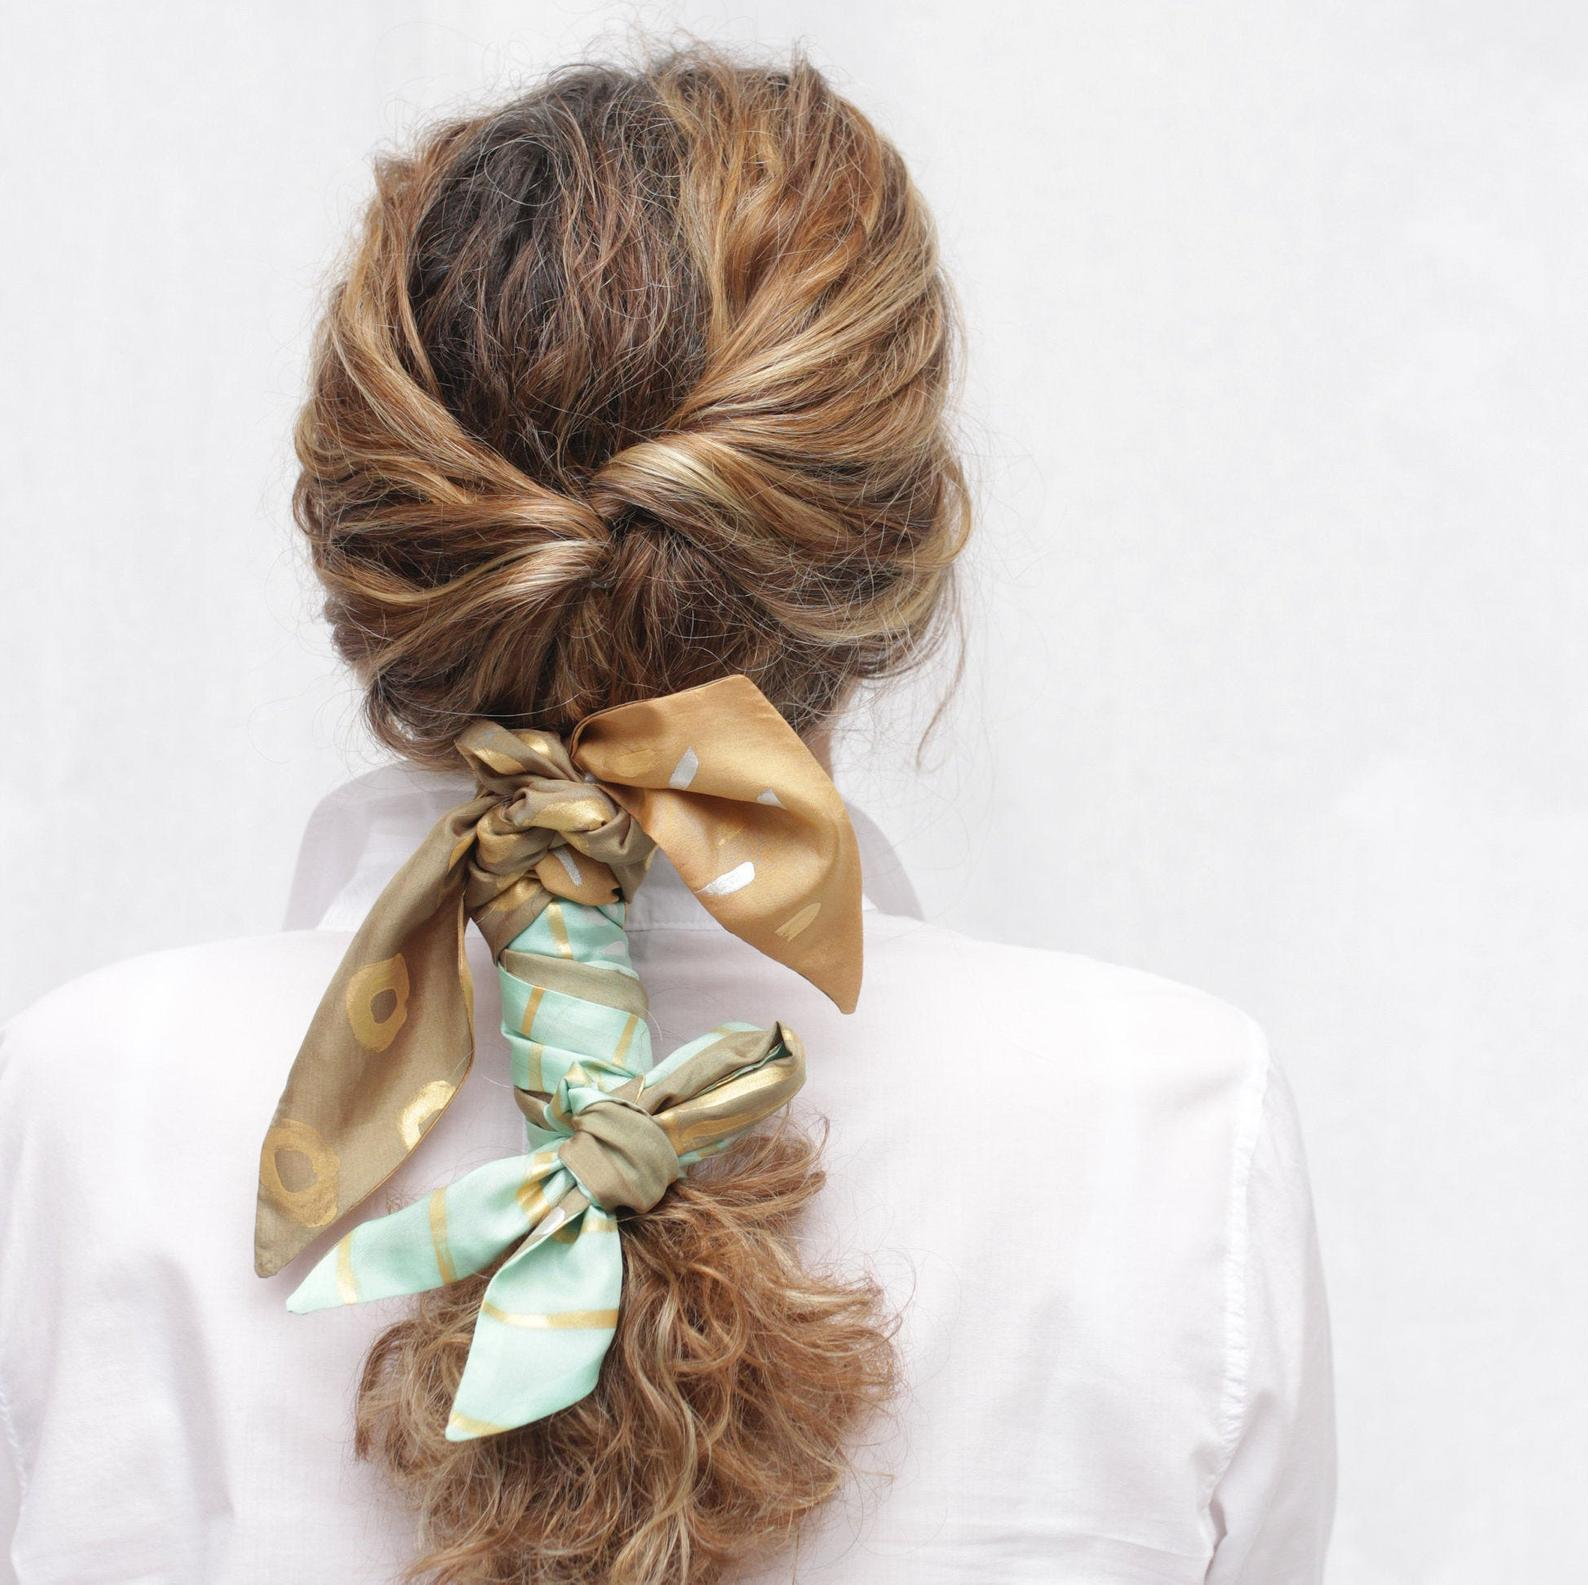 Silk hair scarf braided